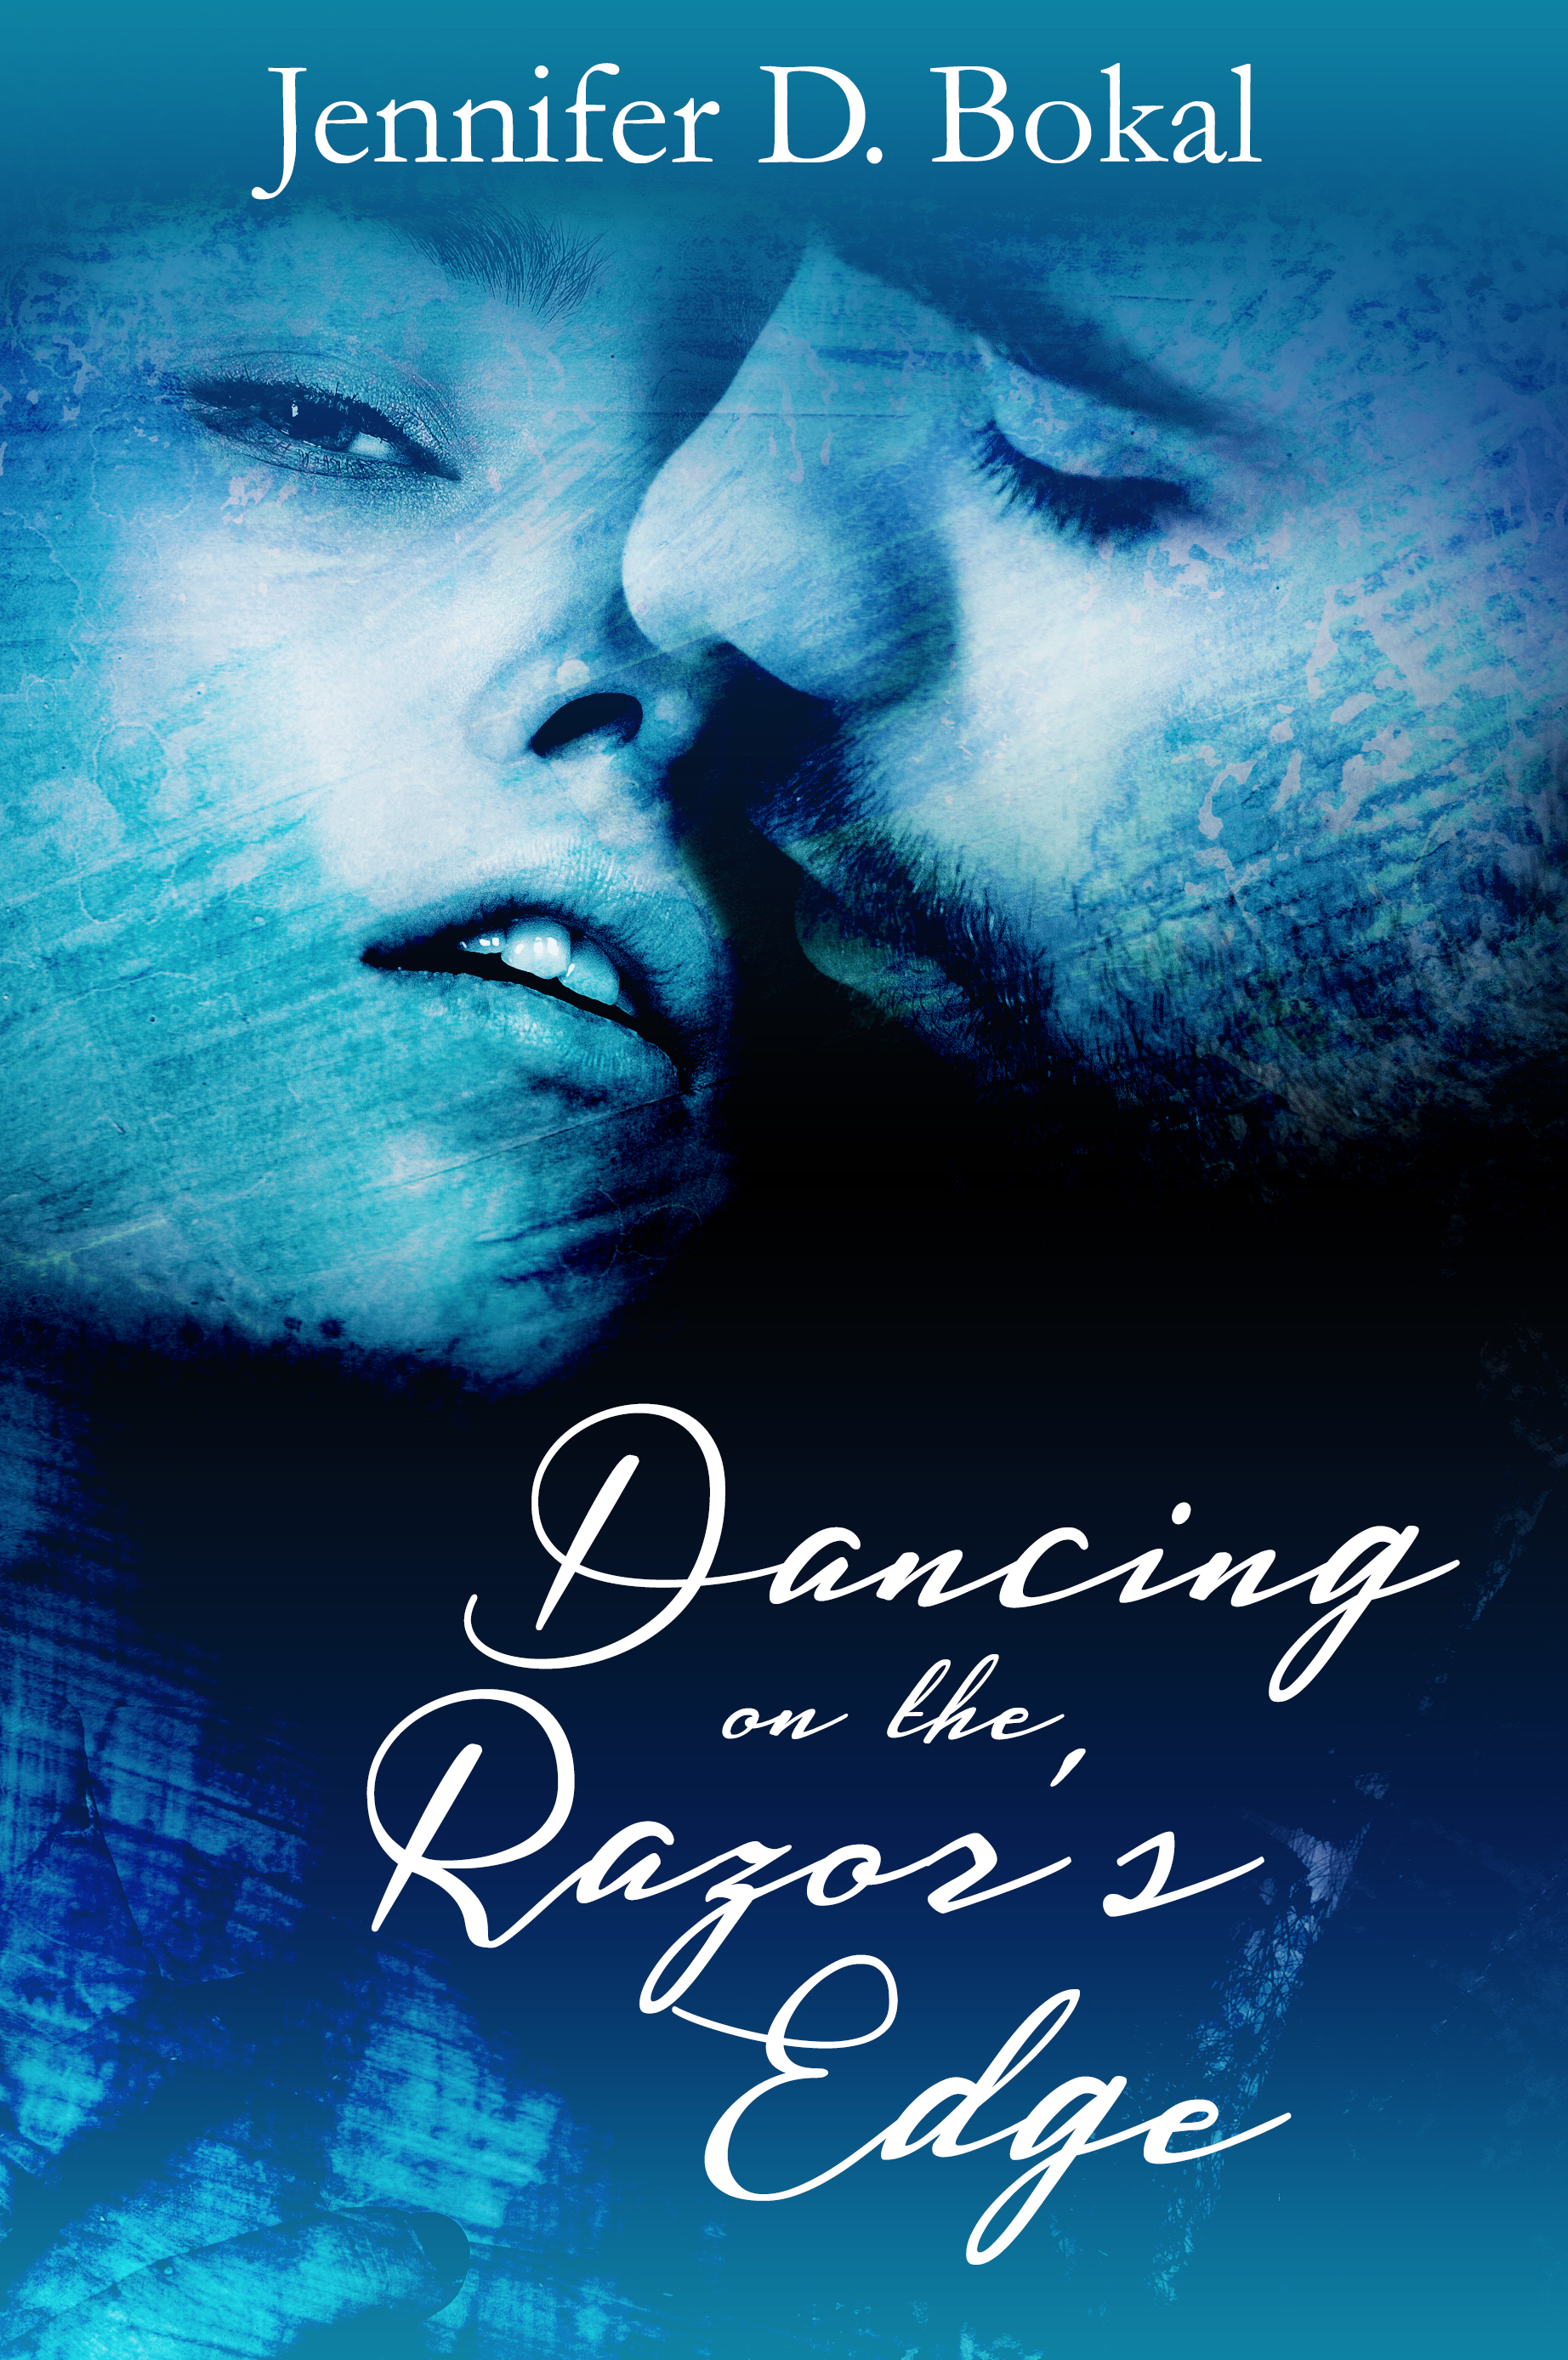 Dancing on the Razor's Edge by Jennifer D. Bokal